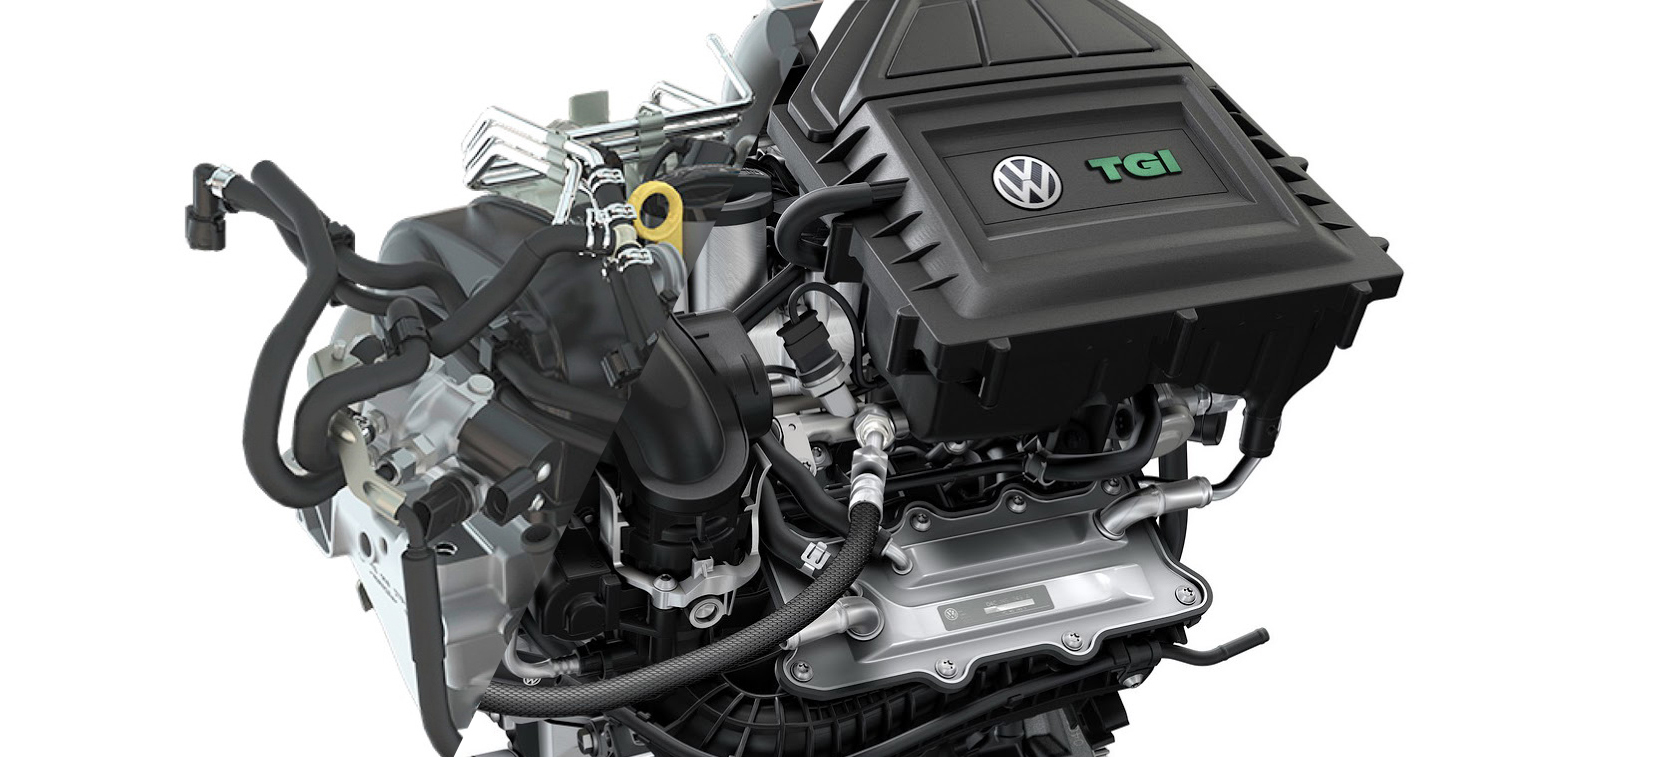 Volkswagen replaces diesels with CNG units